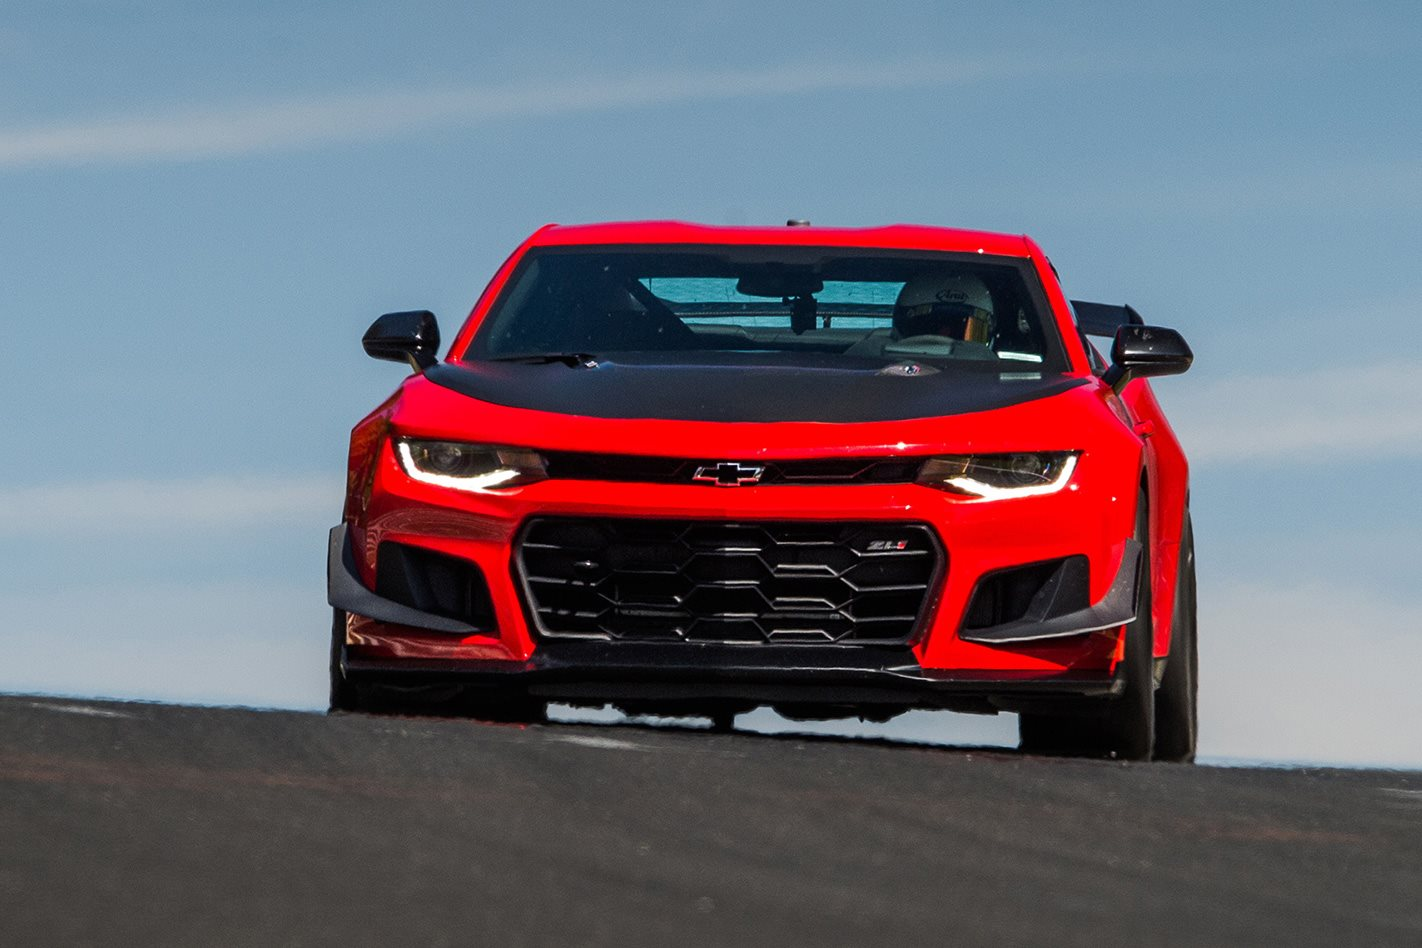 2018 Chevrolet Camaro Zl1 1le Sets Lap Record At The